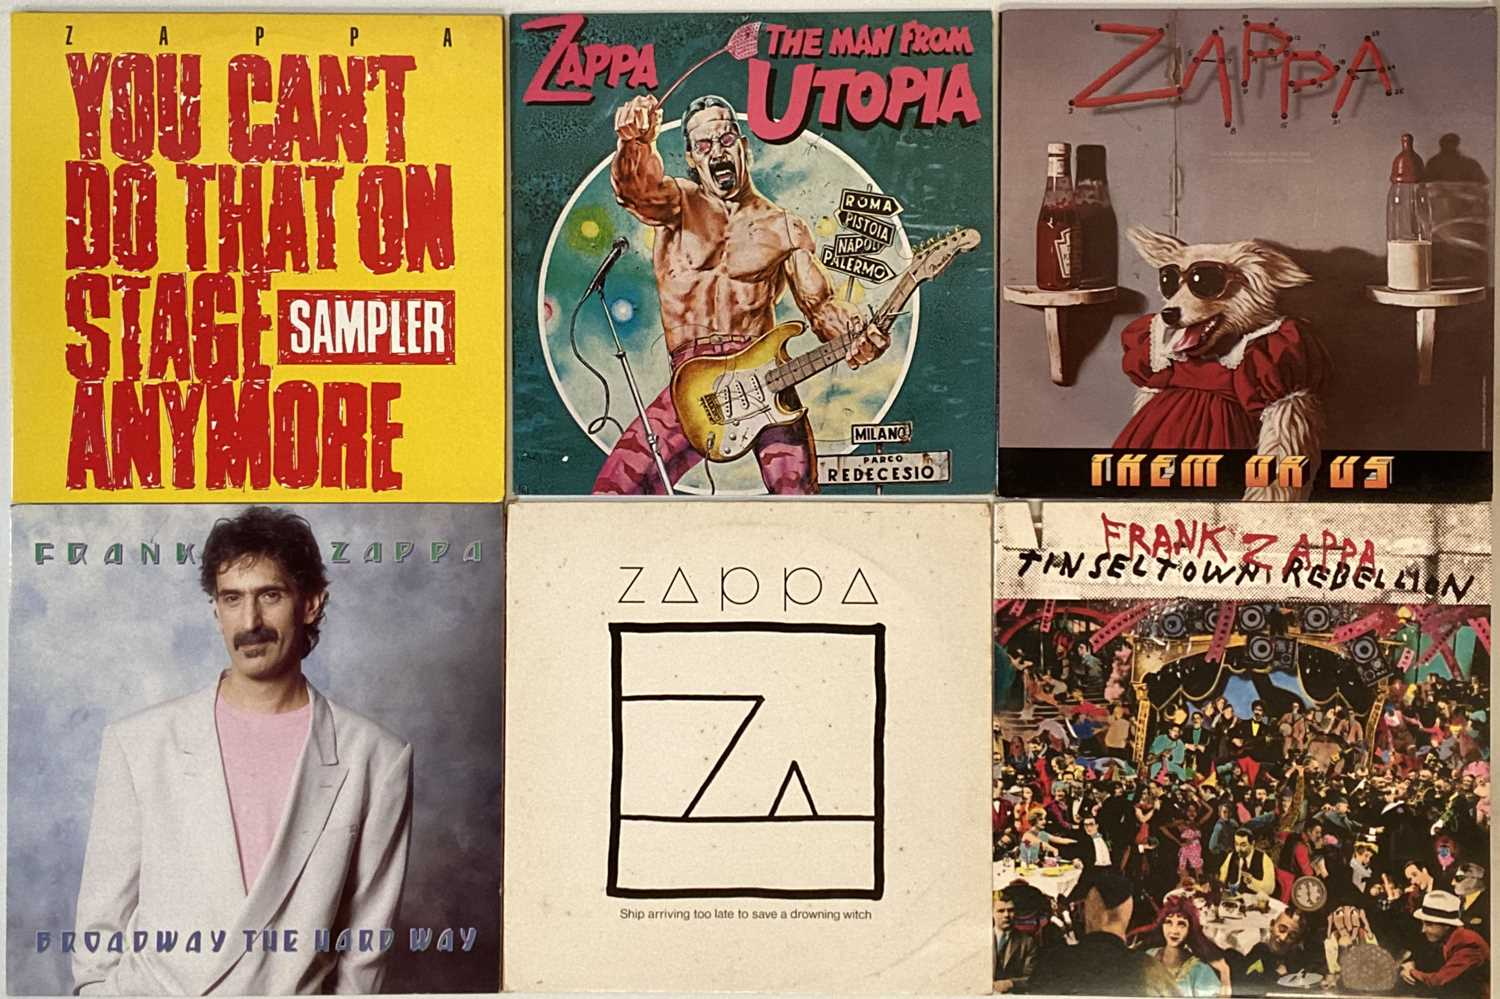 FRANK ZAPPA - LP COLLECTION